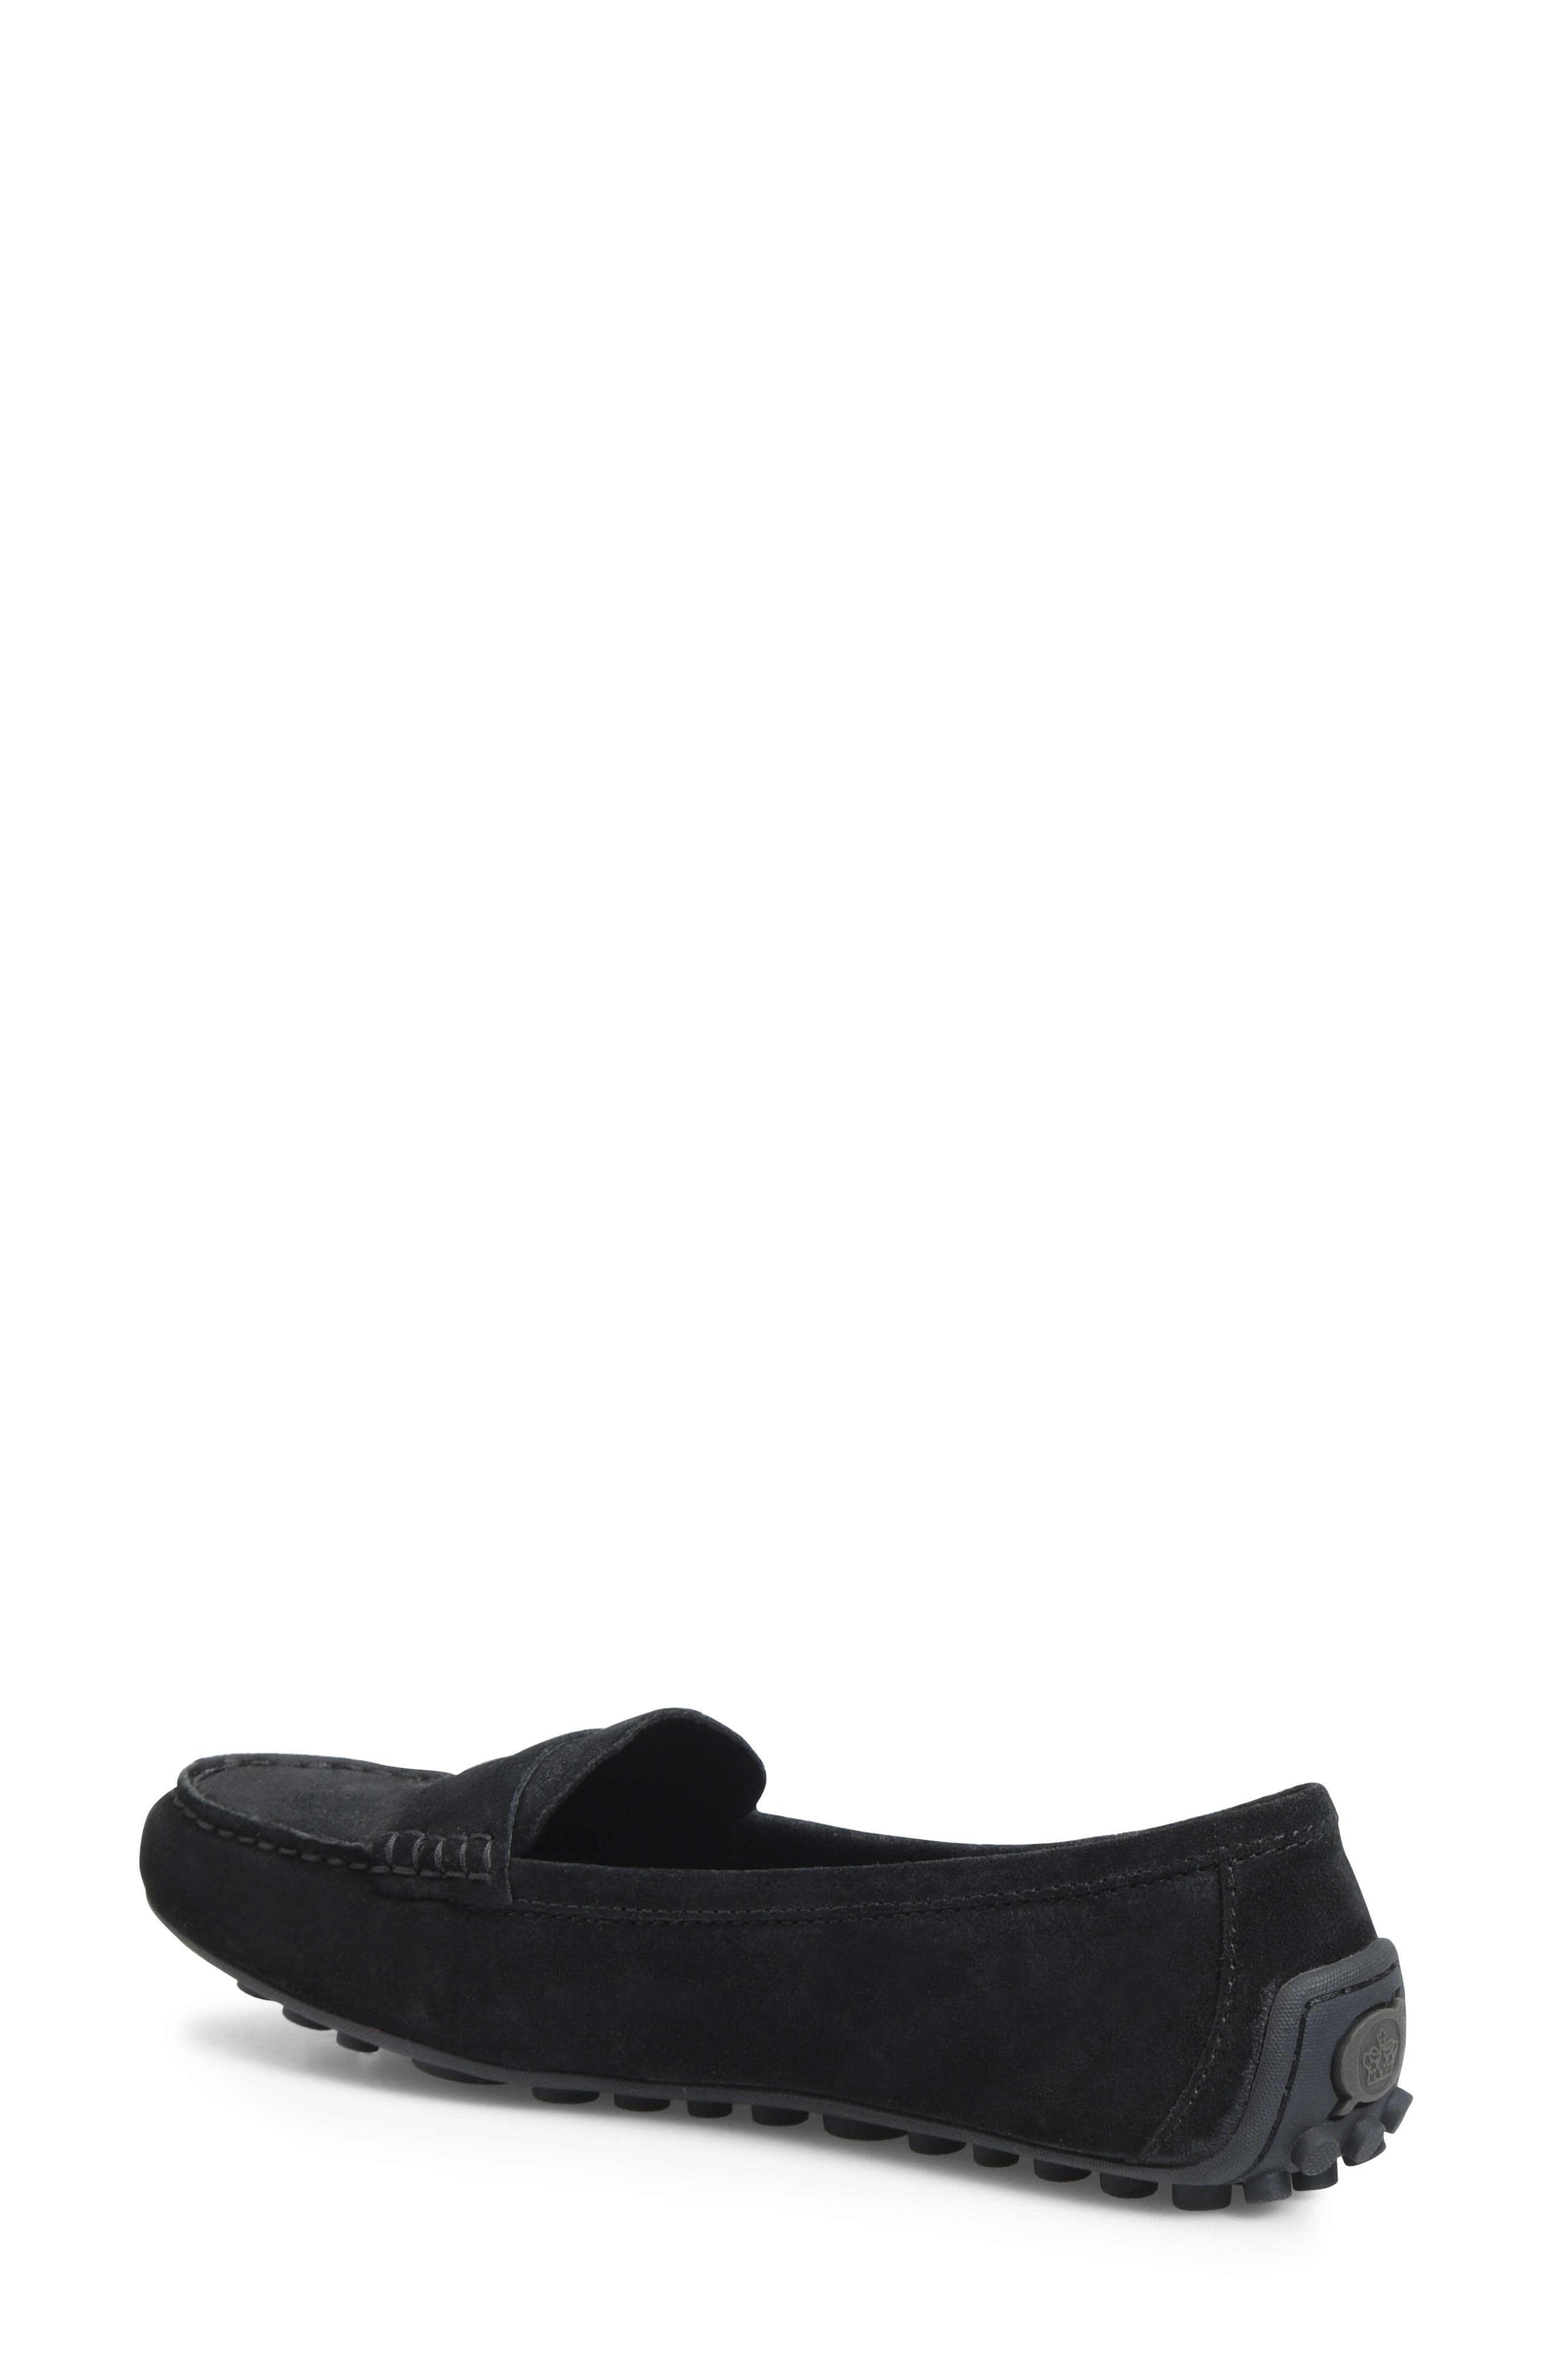 Malena Penny Loafer,                             Alternate thumbnail 2, color,                             BLACK SUEDE